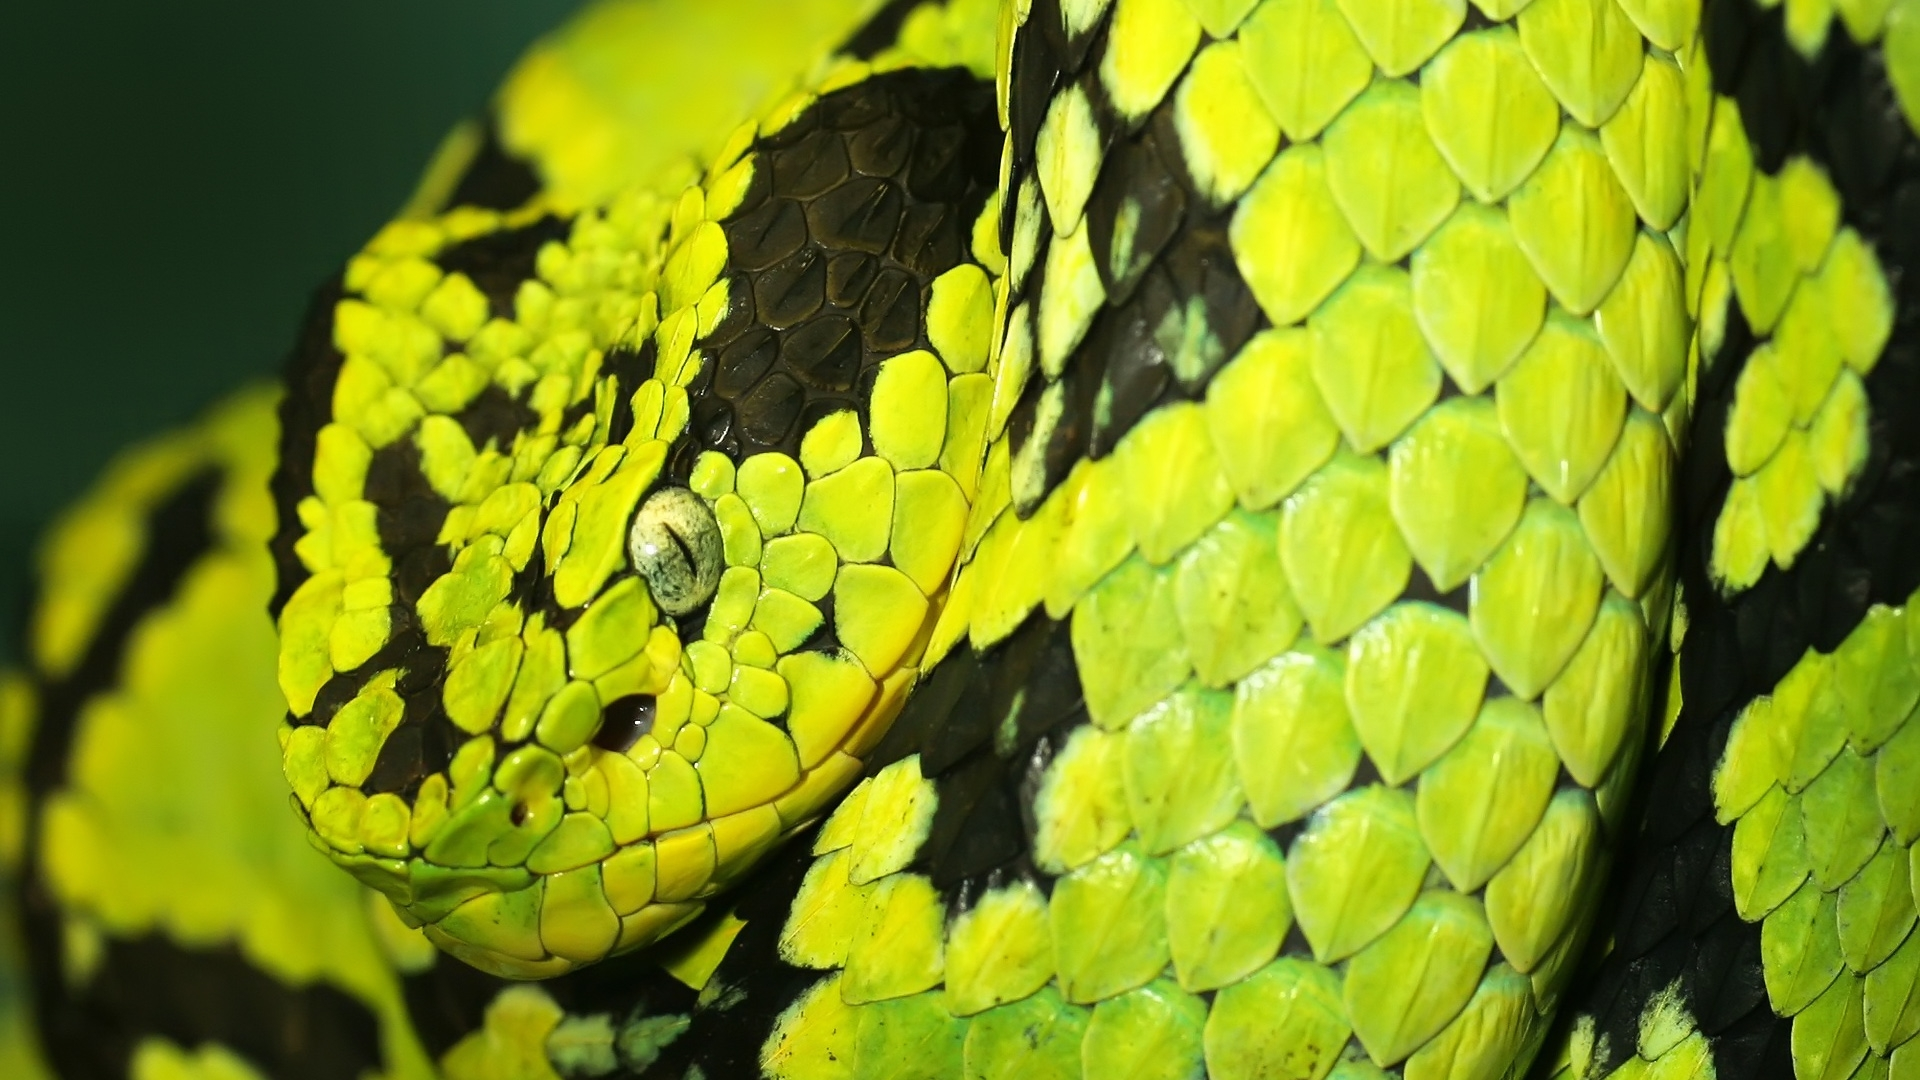 Green and black snake high definition wallpapers hd - Green snake hd wallpaper ...